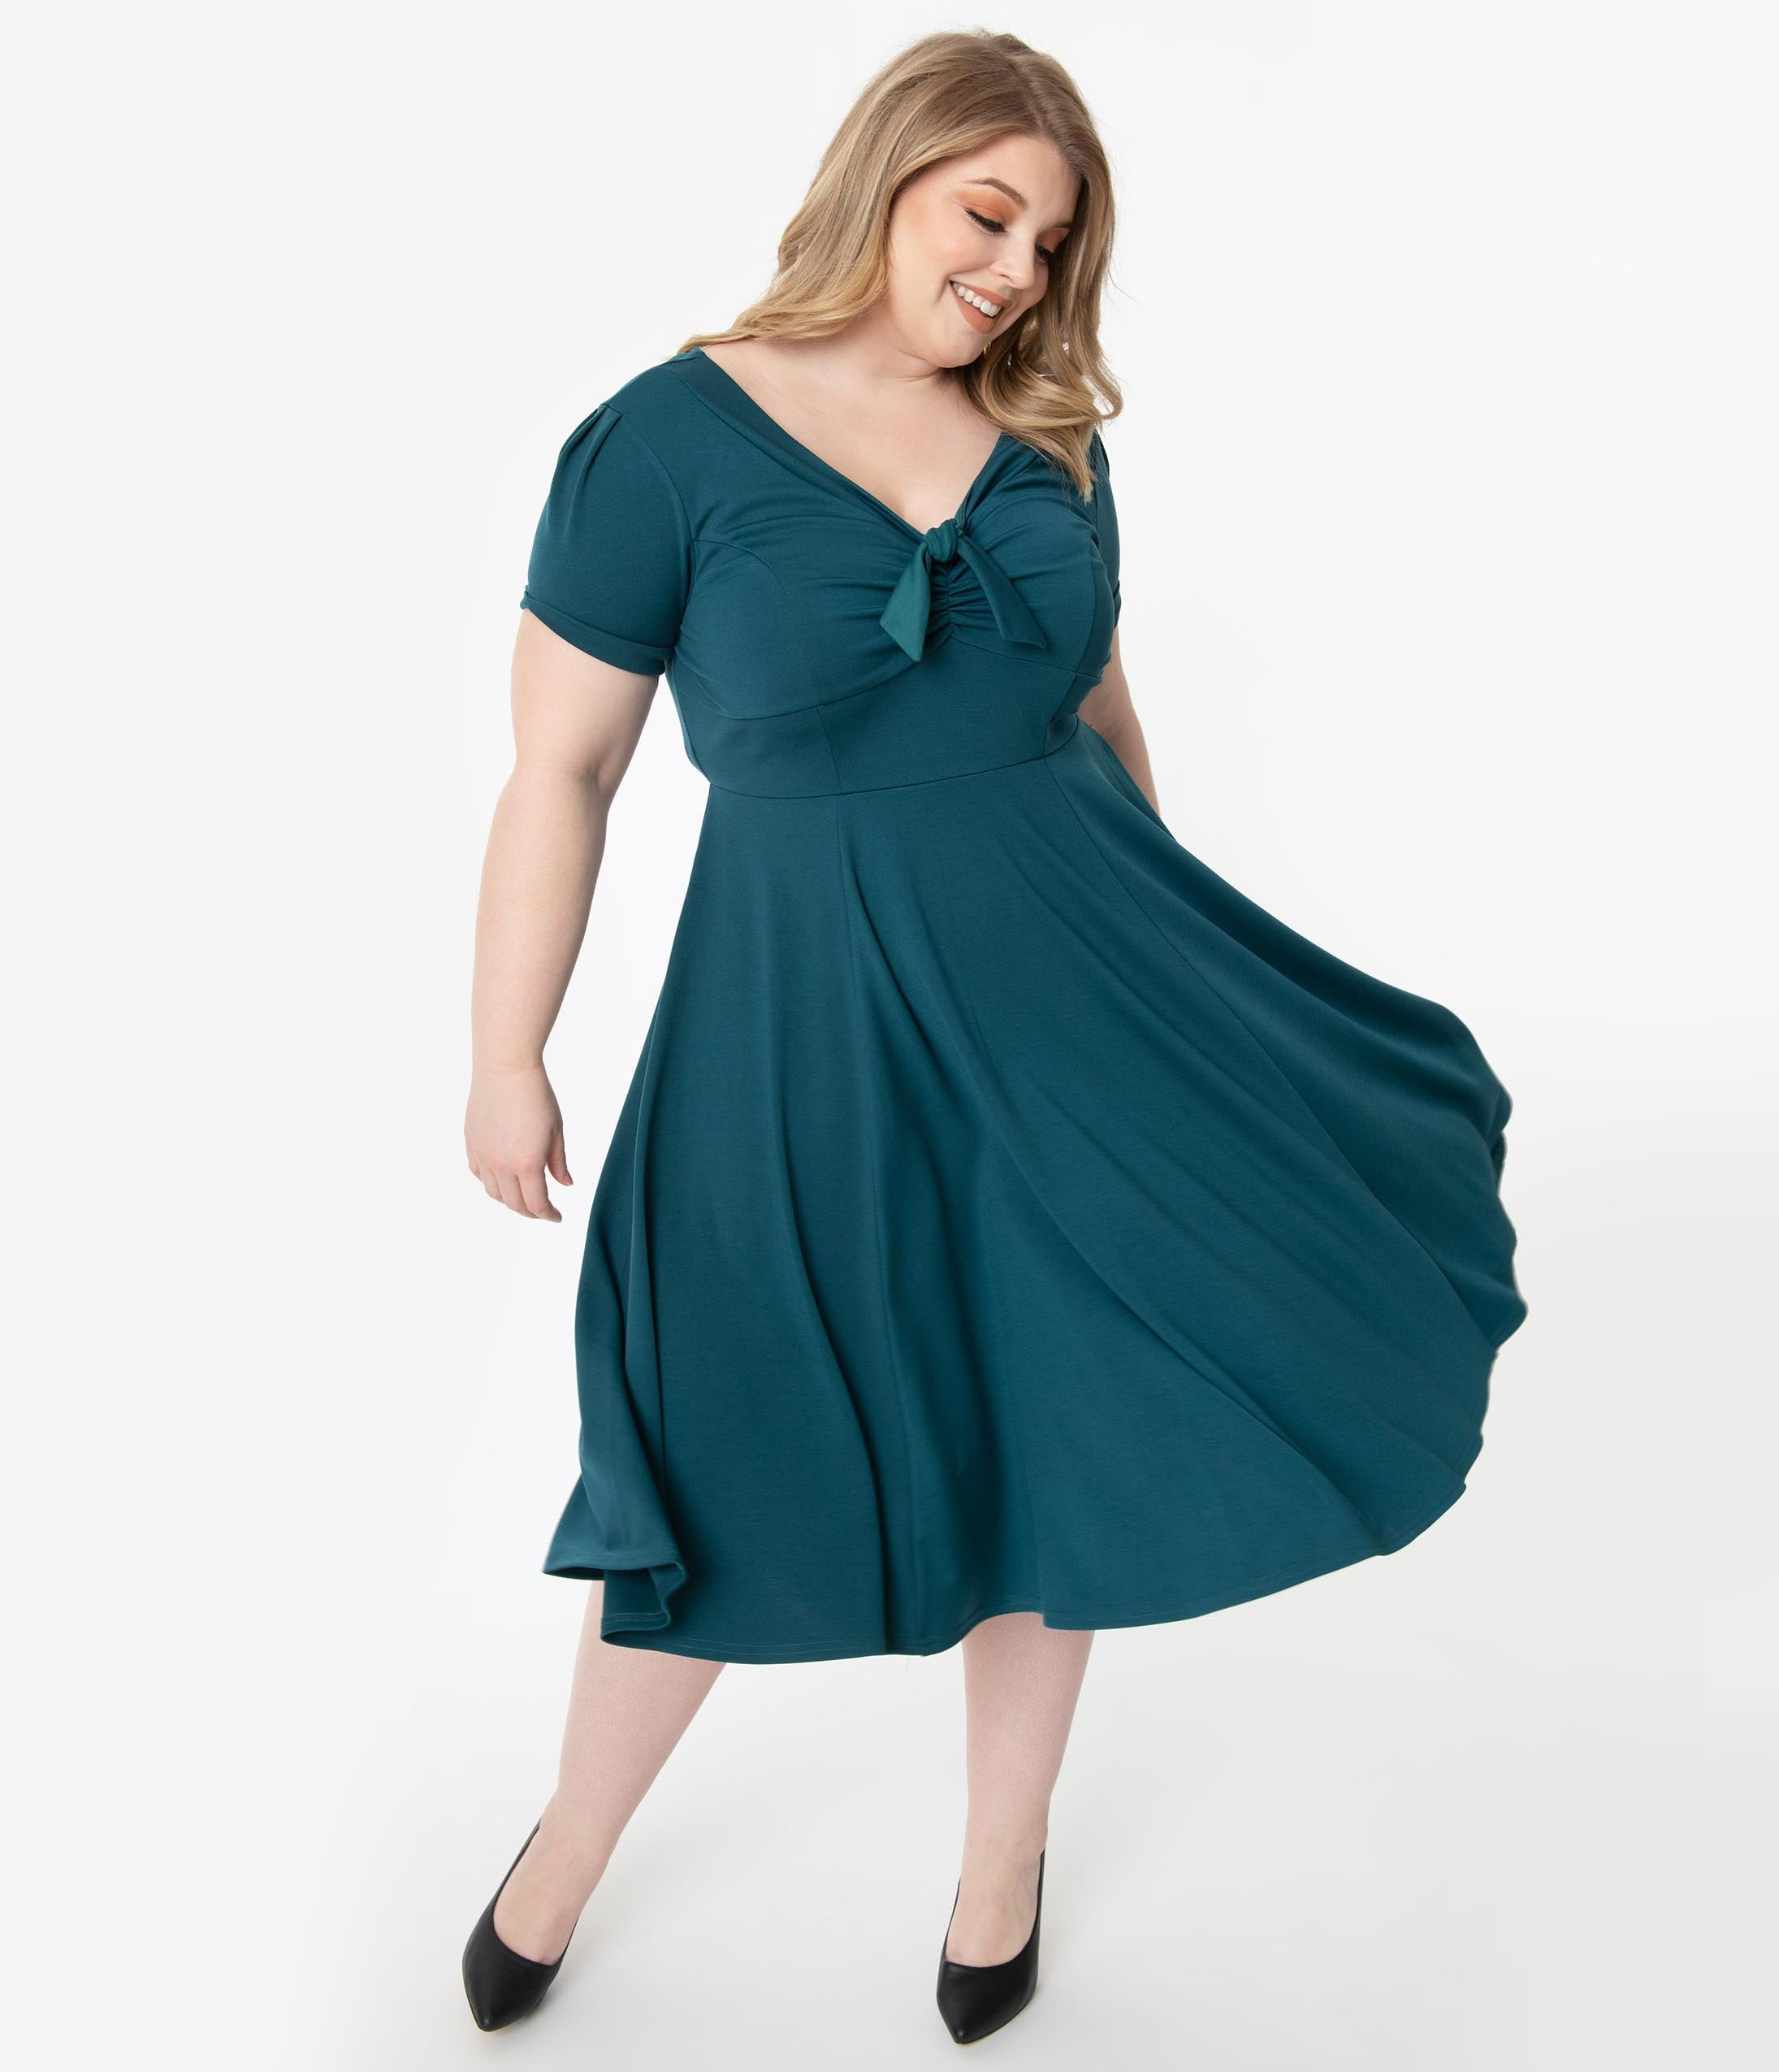 500 Vintage Style Dresses for Sale | Vintage Inspired Dresses Unique Vintage Plus Size 1940S Style Teal Natalie Swing Dress $78.00 AT vintagedancer.com